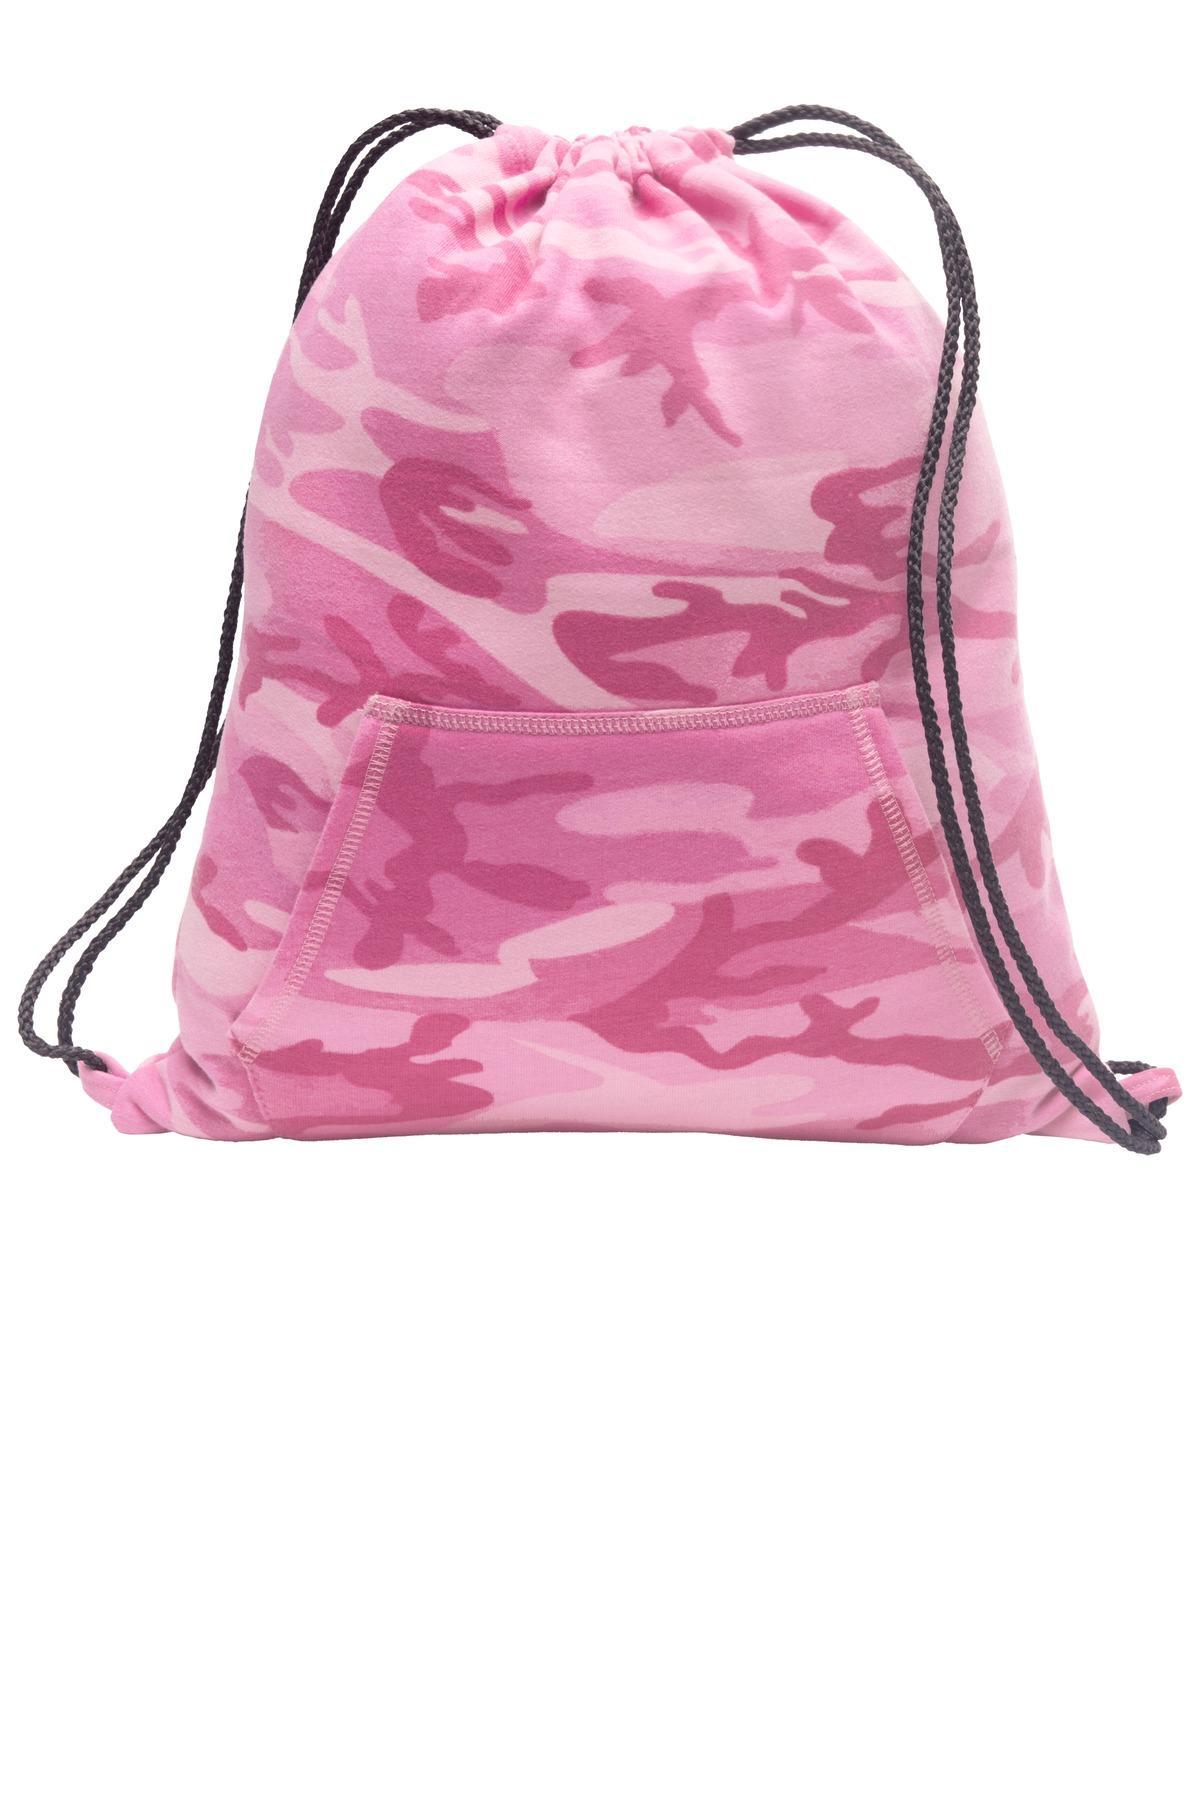 Port & Company ®  Core Fleece Sweatshirt Cinch Pack. BG614 - Pink Camo